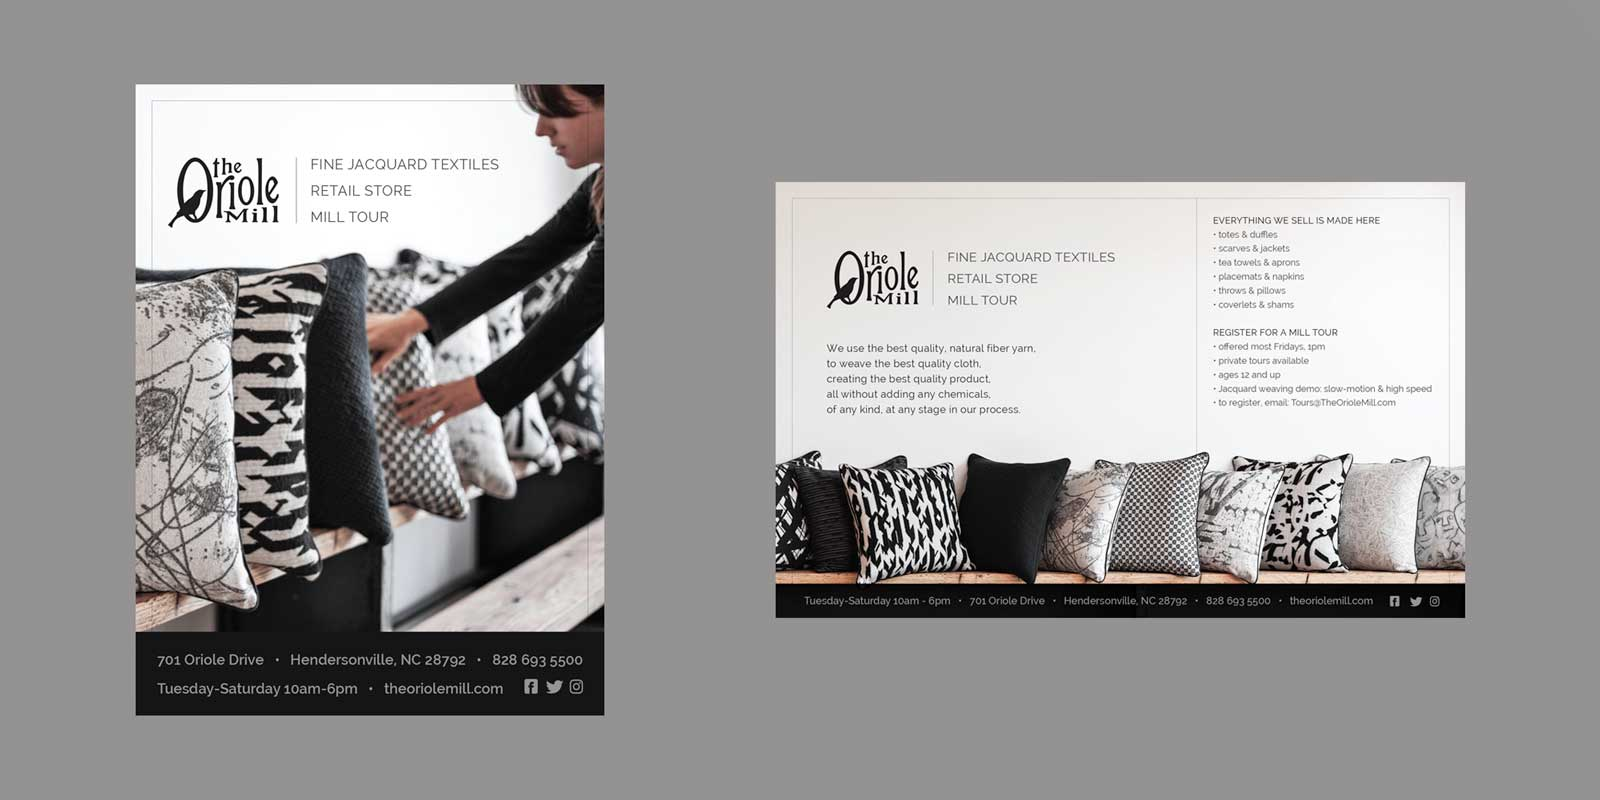 Small print advertisements for The Oriole Mill, showing a variety of black and white patterns on throw pillows